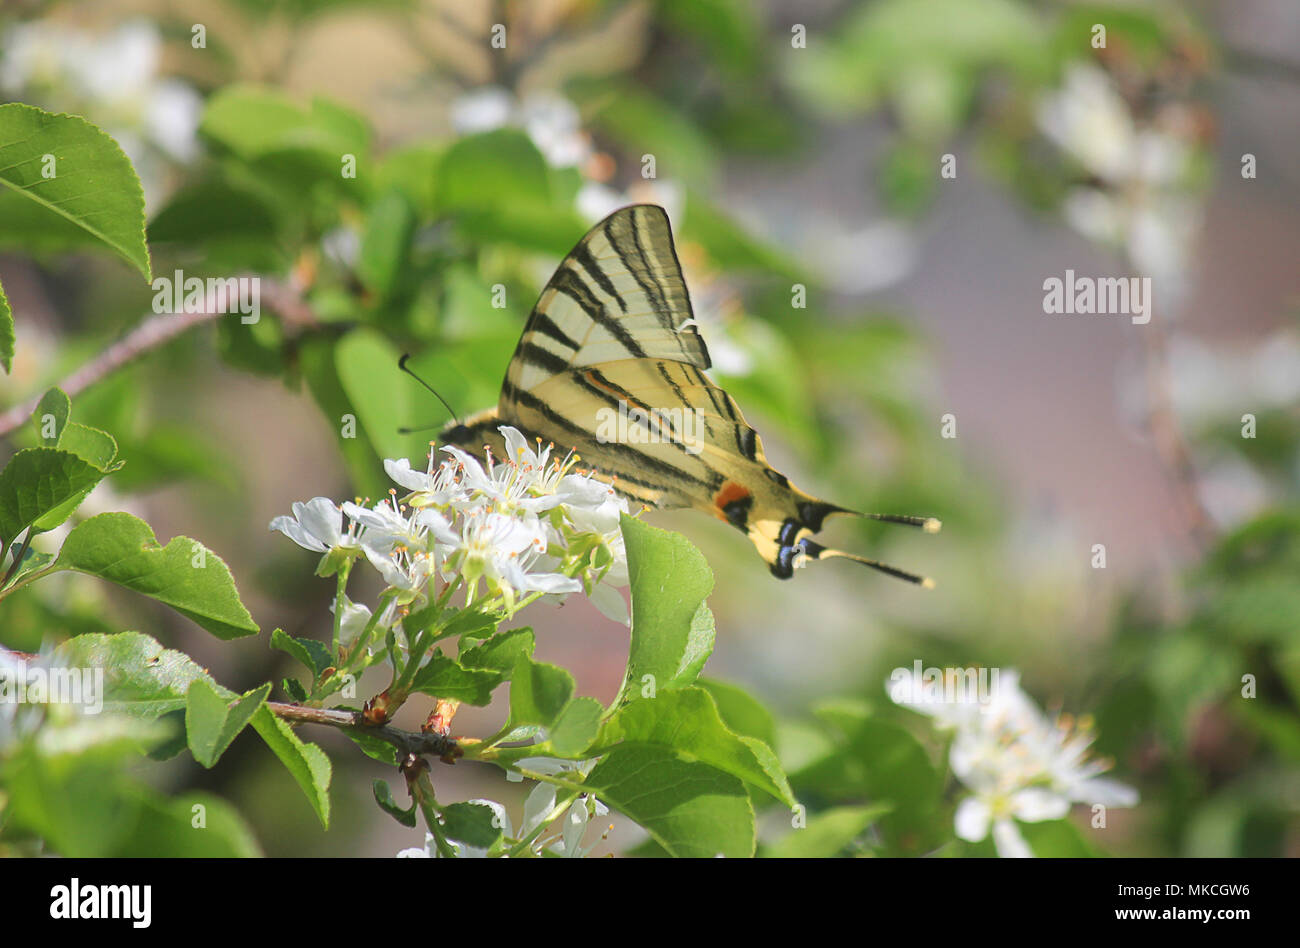 a butterlfy on the flower - Stock Image